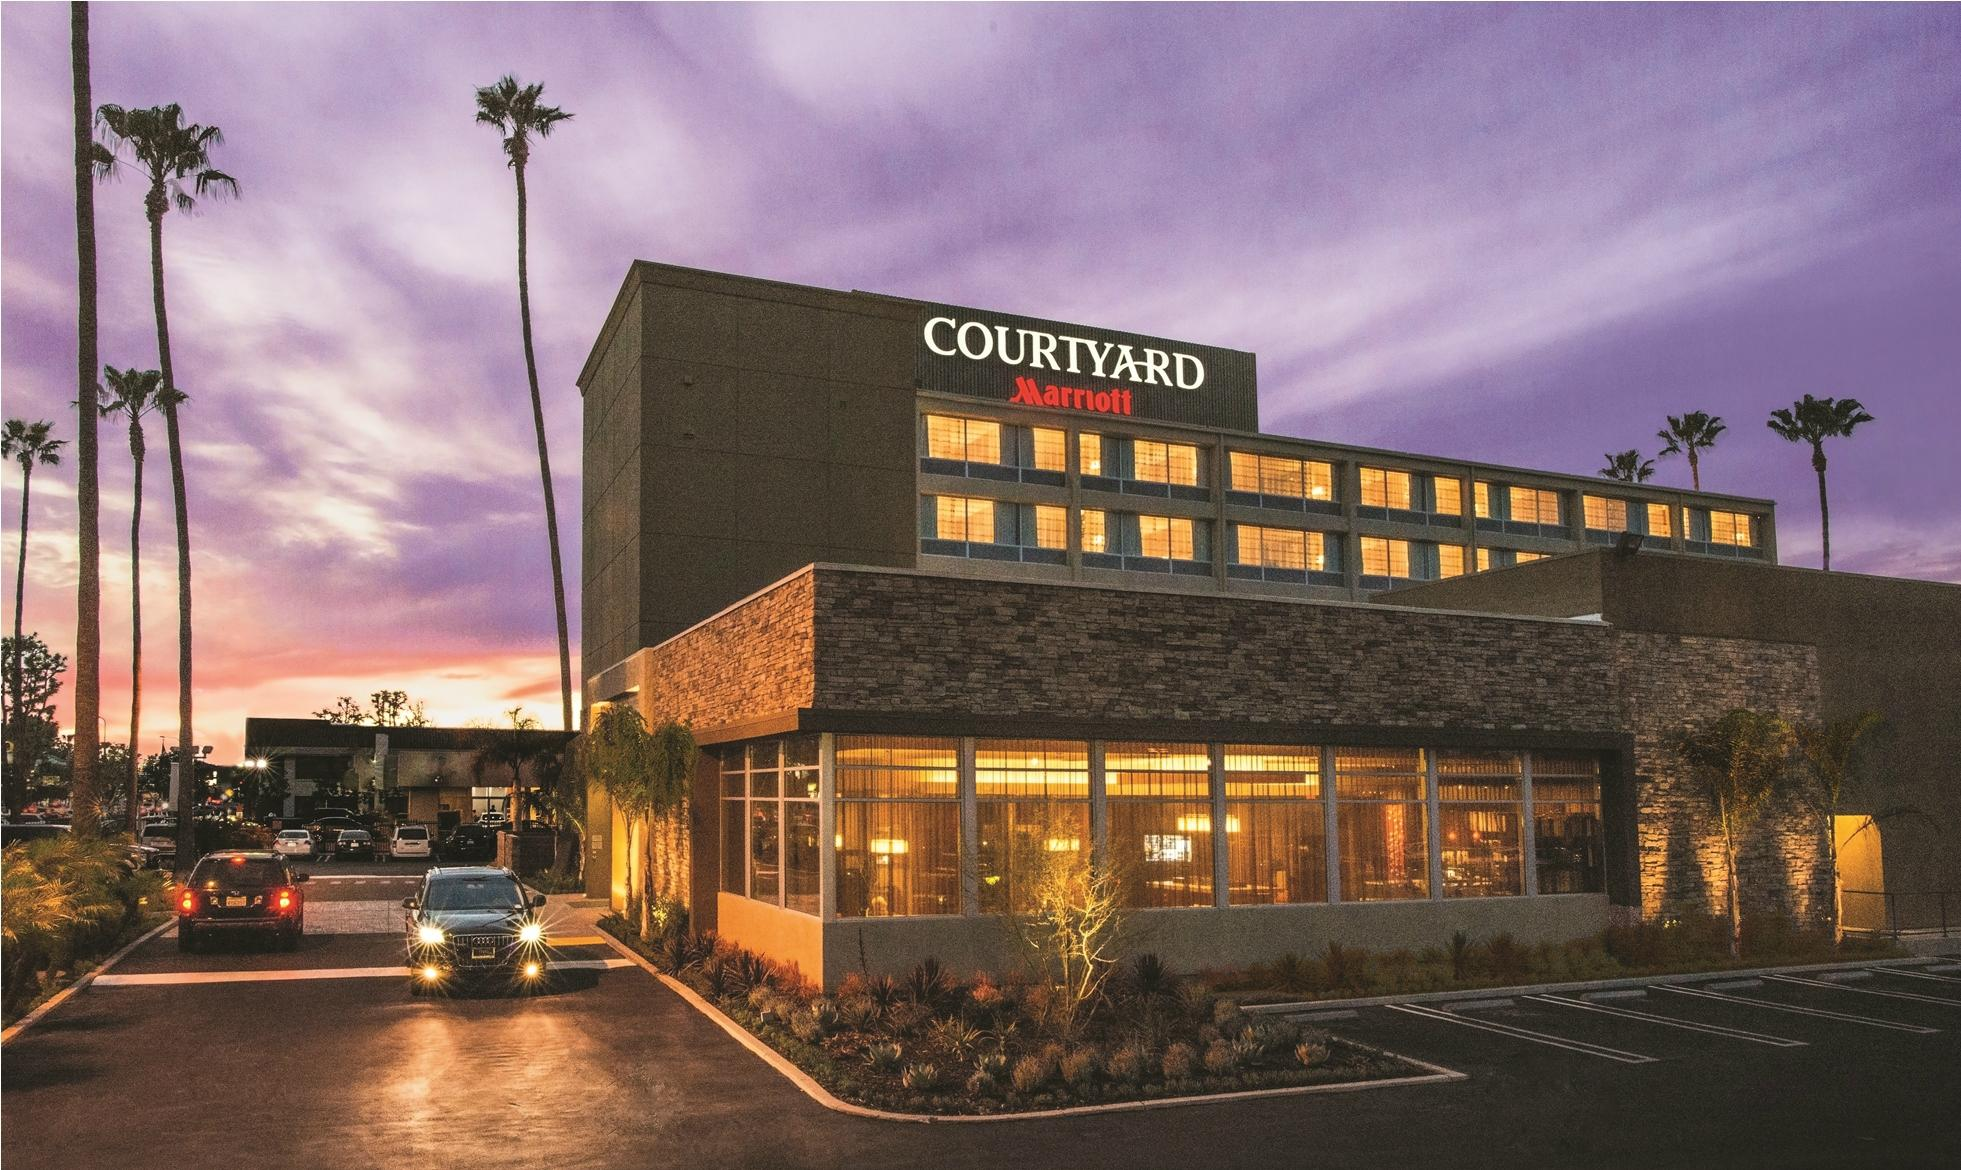 Courtyard by Marriott Los Angeles Woodland Hills